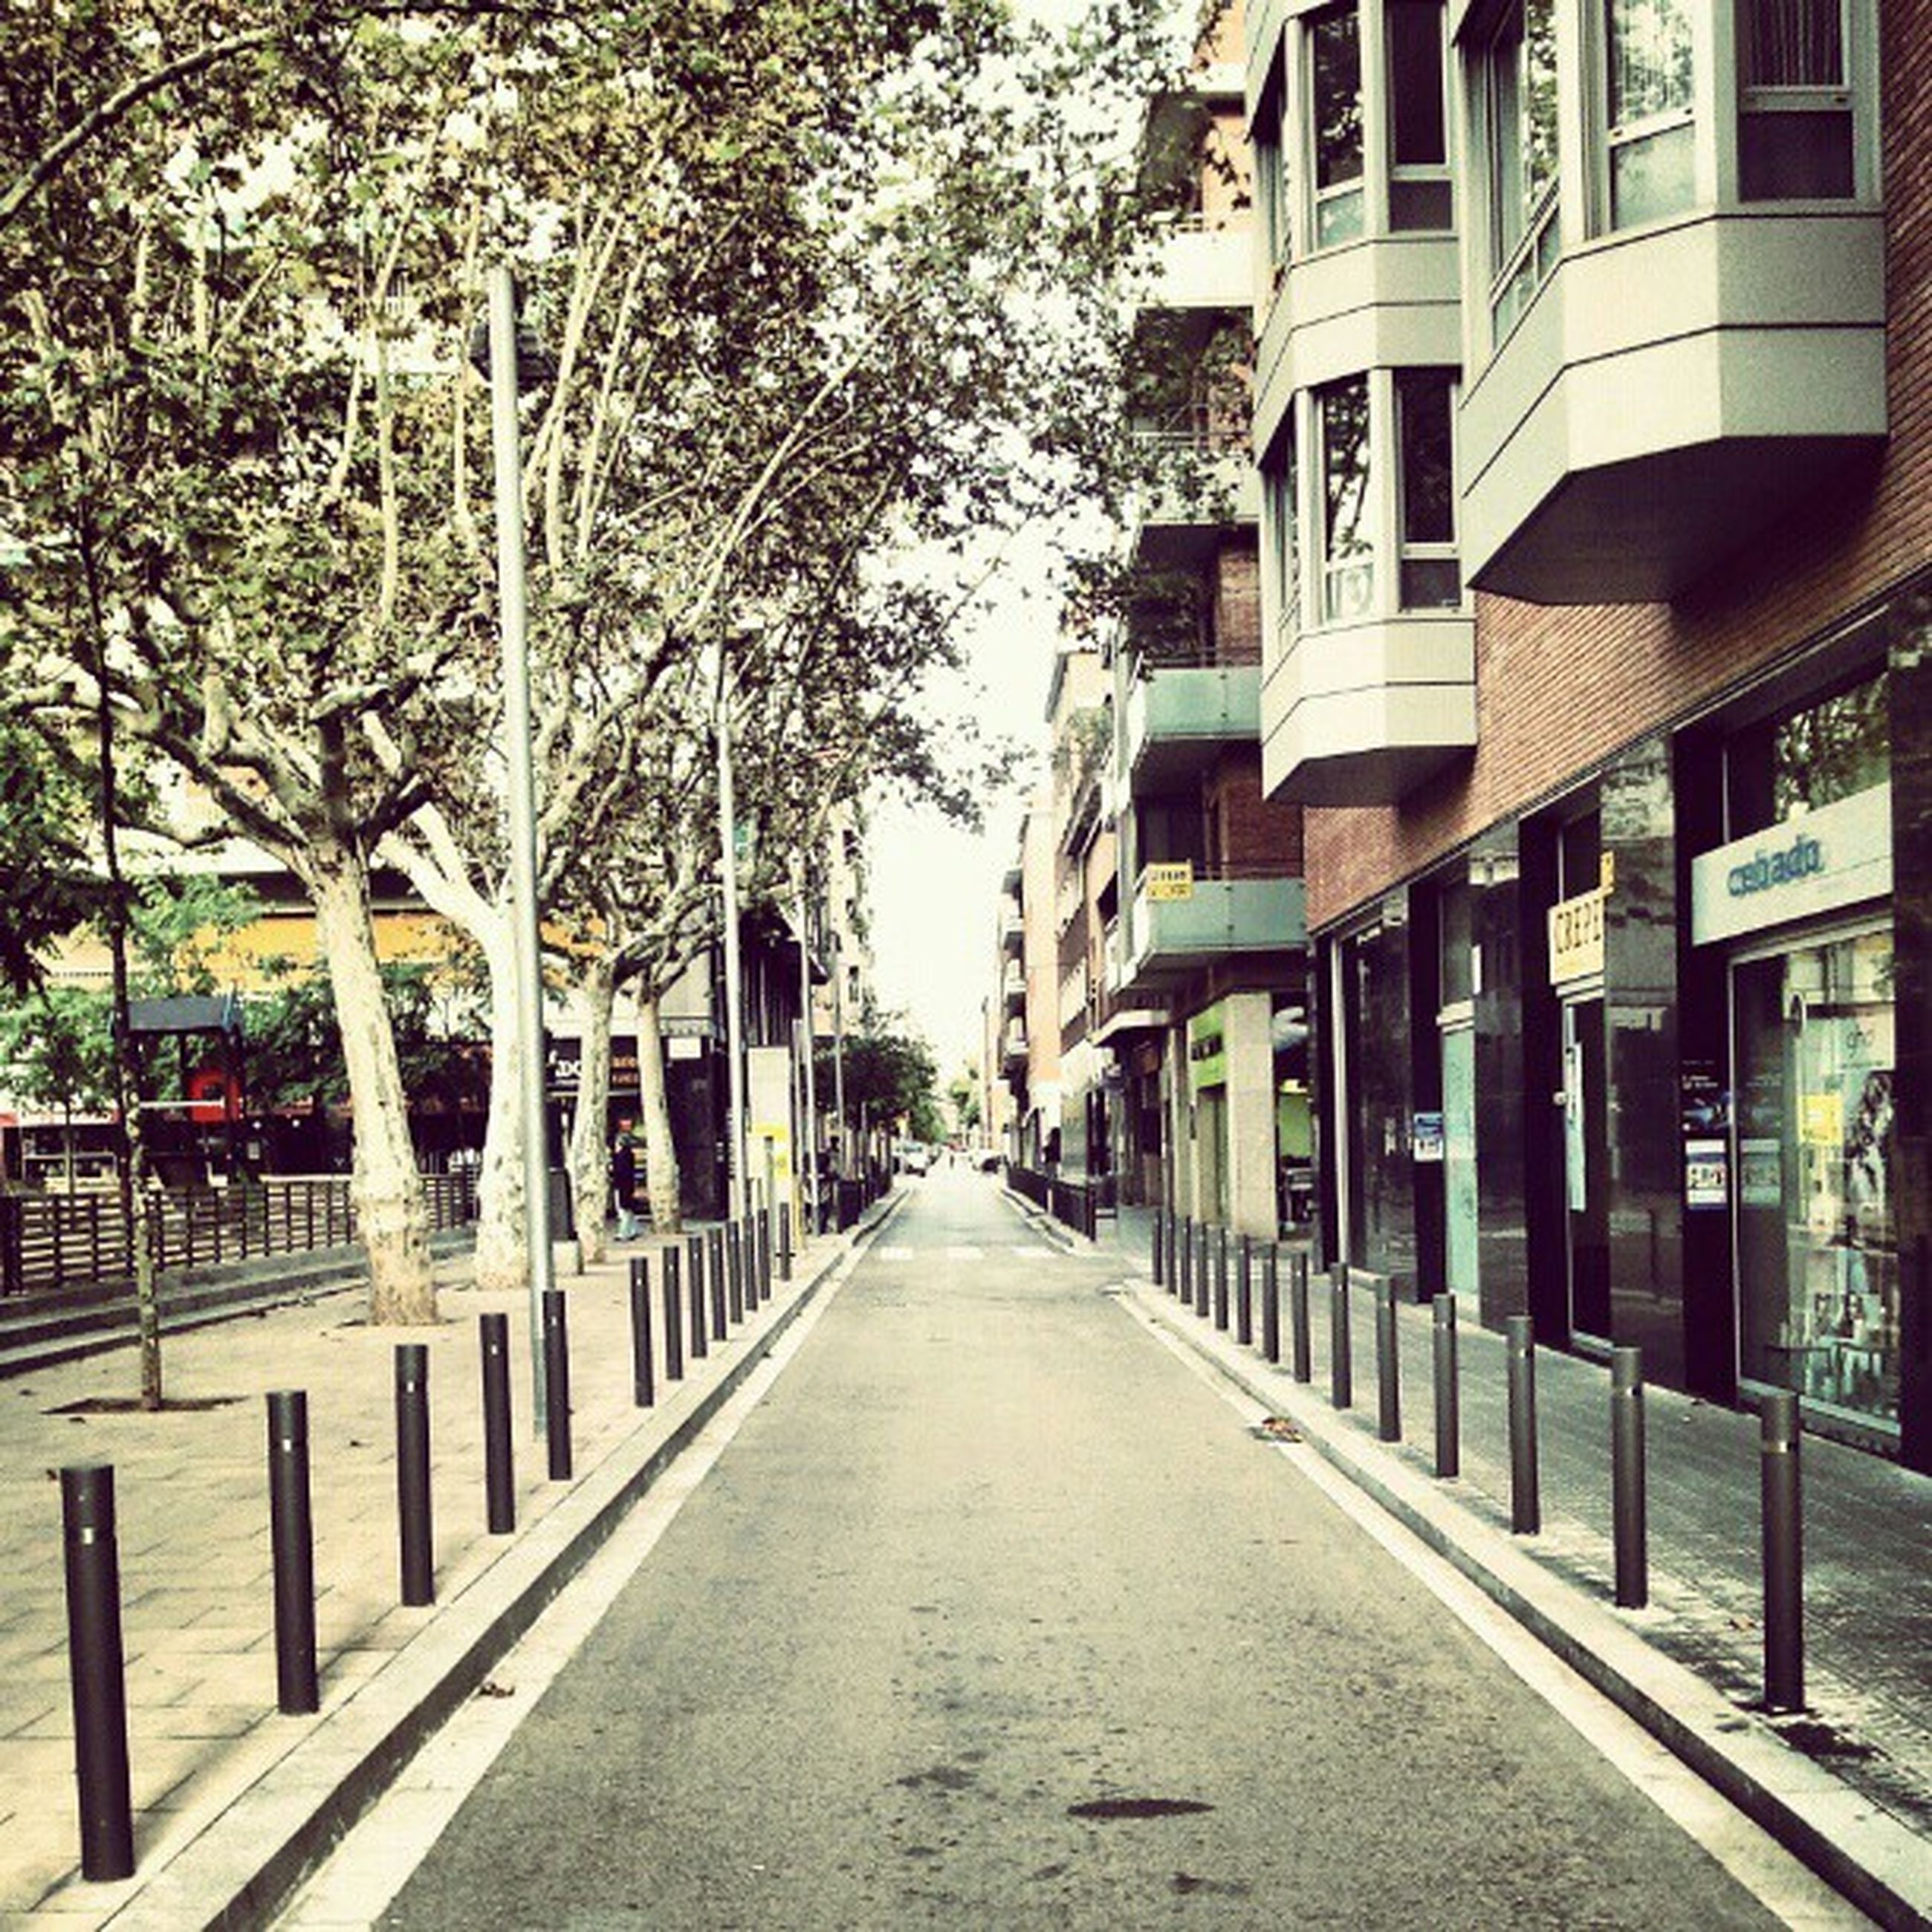 architecture, building exterior, built structure, the way forward, diminishing perspective, tree, city, street, vanishing point, treelined, residential building, building, empty, footpath, road, street light, transportation, in a row, bare tree, walkway